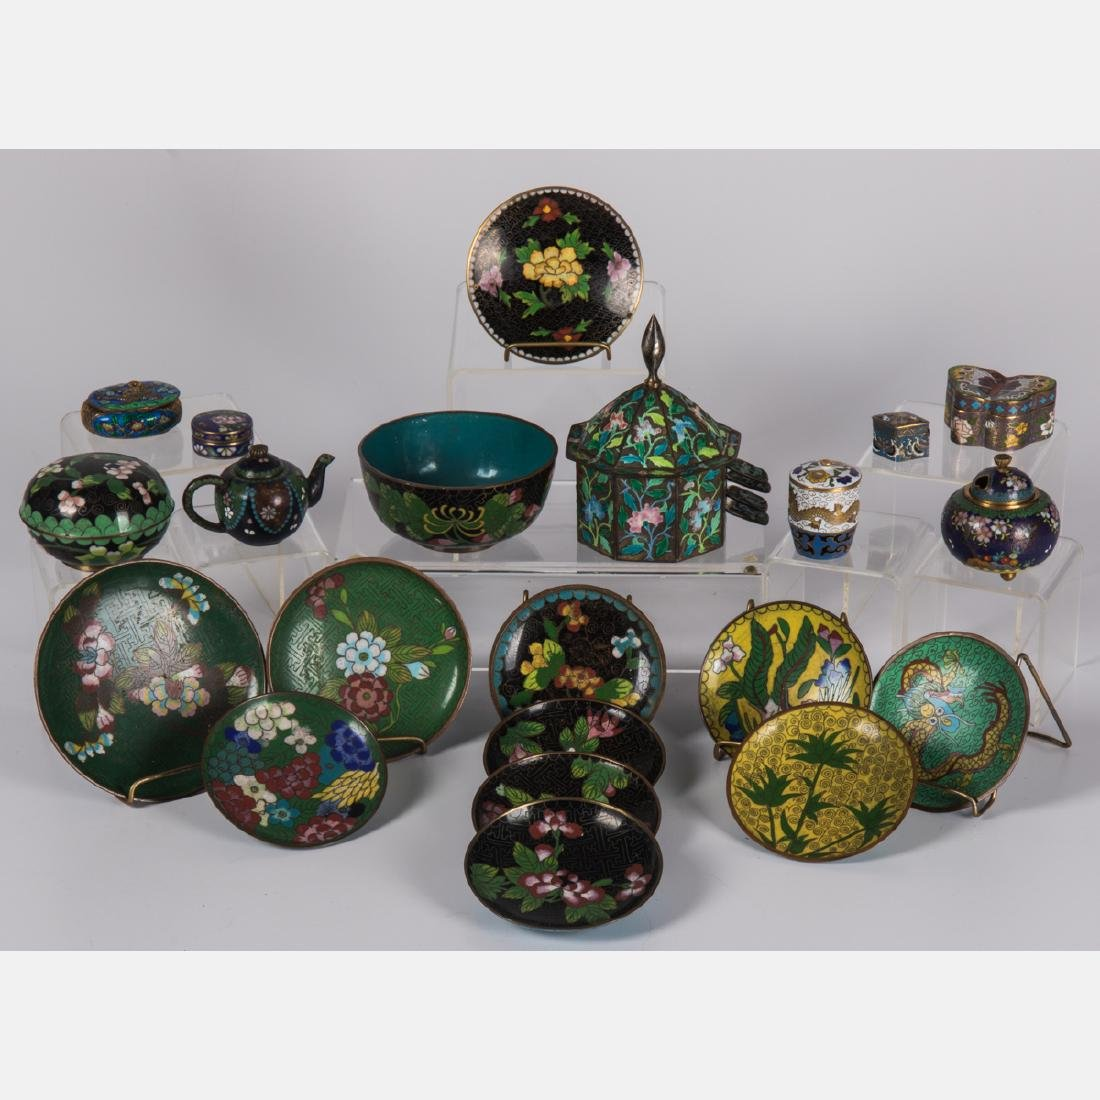 A Group of Twenty-One Chinese Cloisonné Serving and